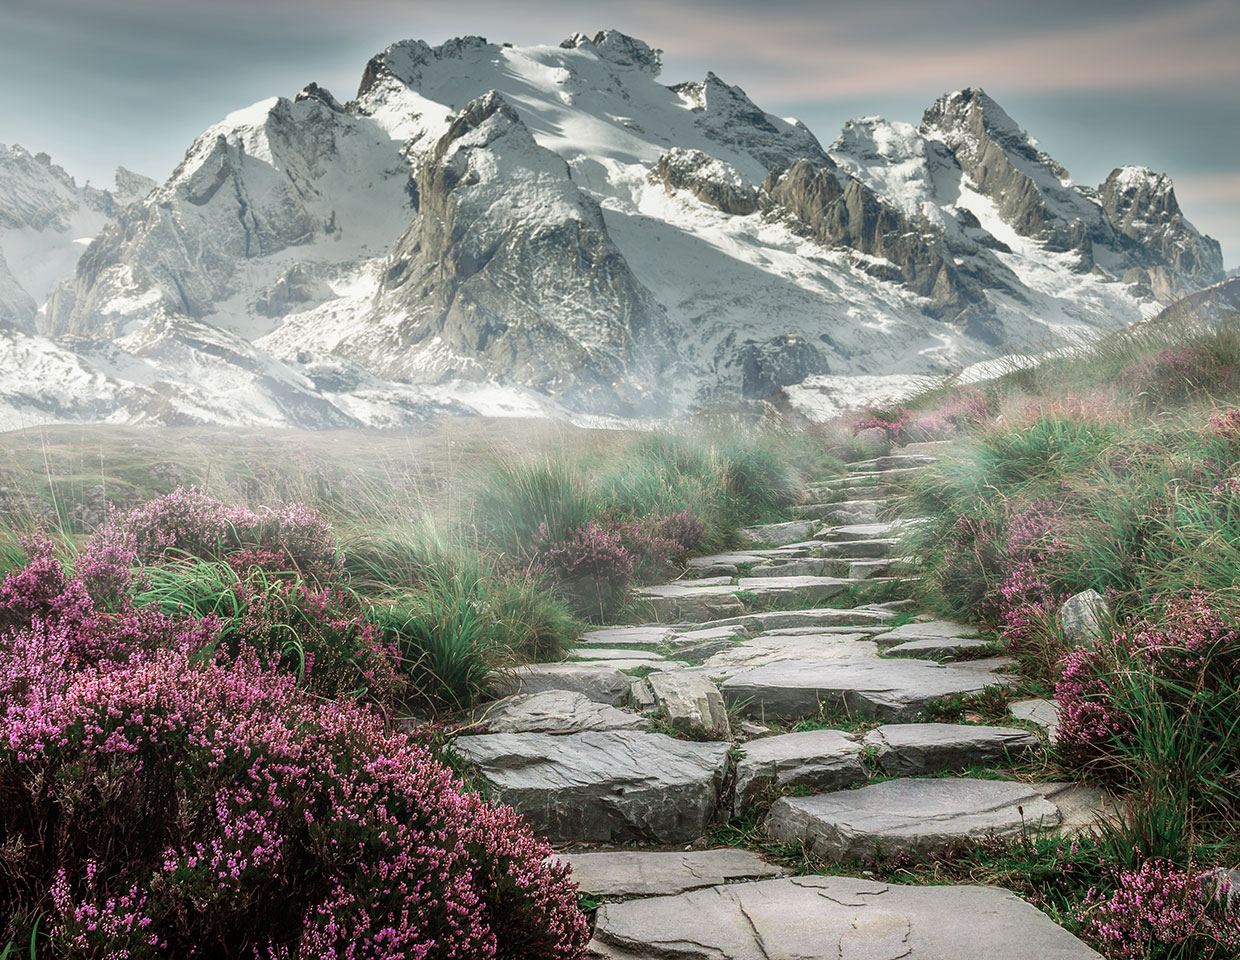 Image of stone steps going through field of heather up into mountains.